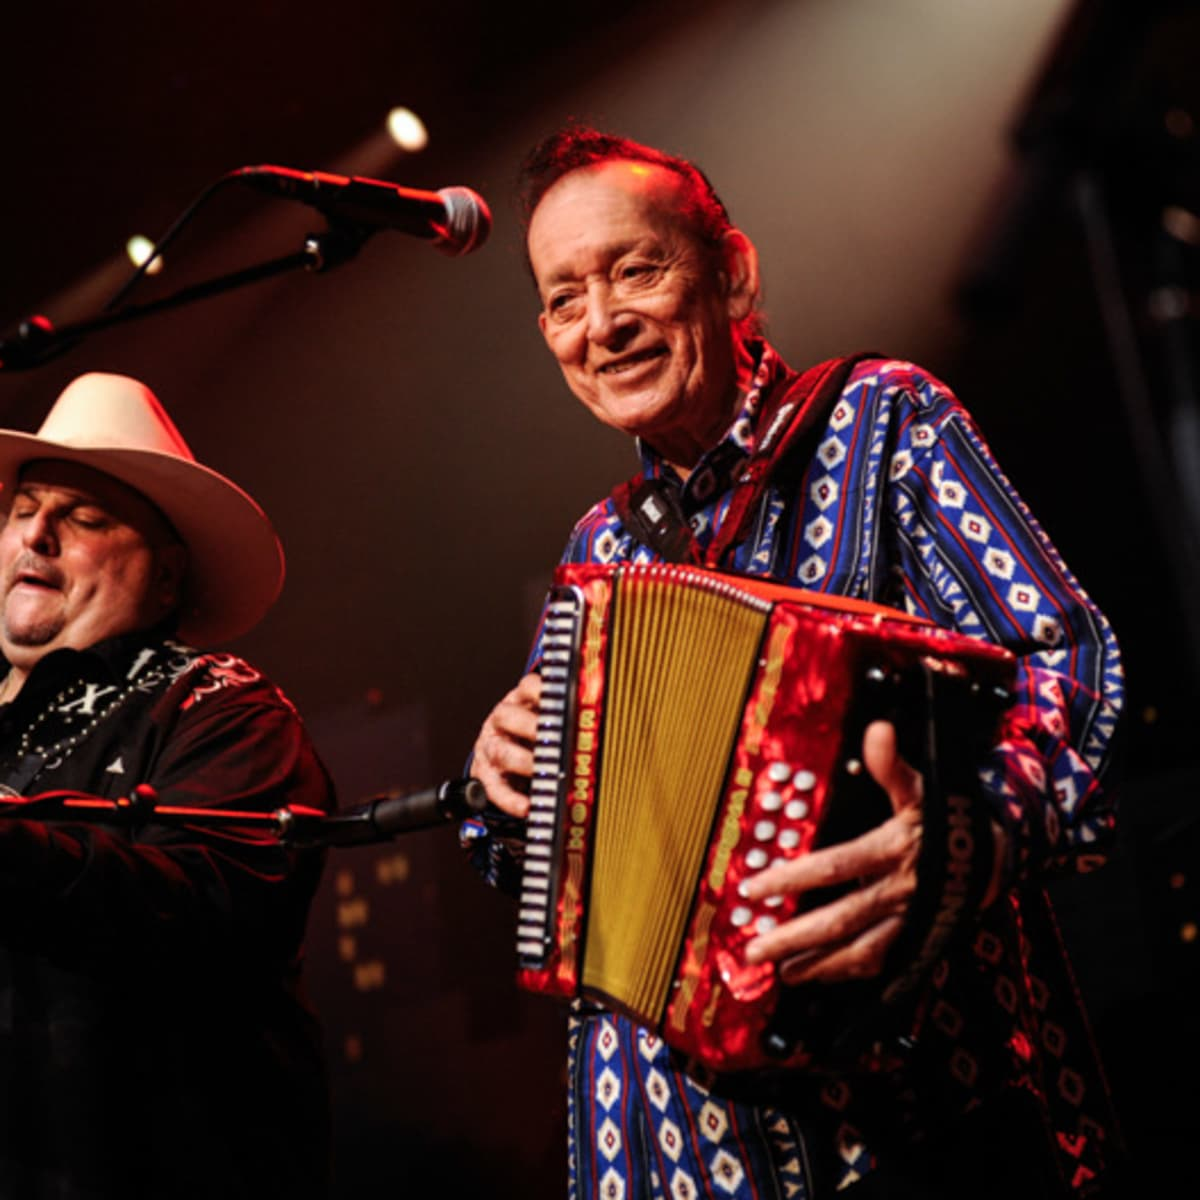 ACL Hall of Fame 2015 Flaco Jimenez